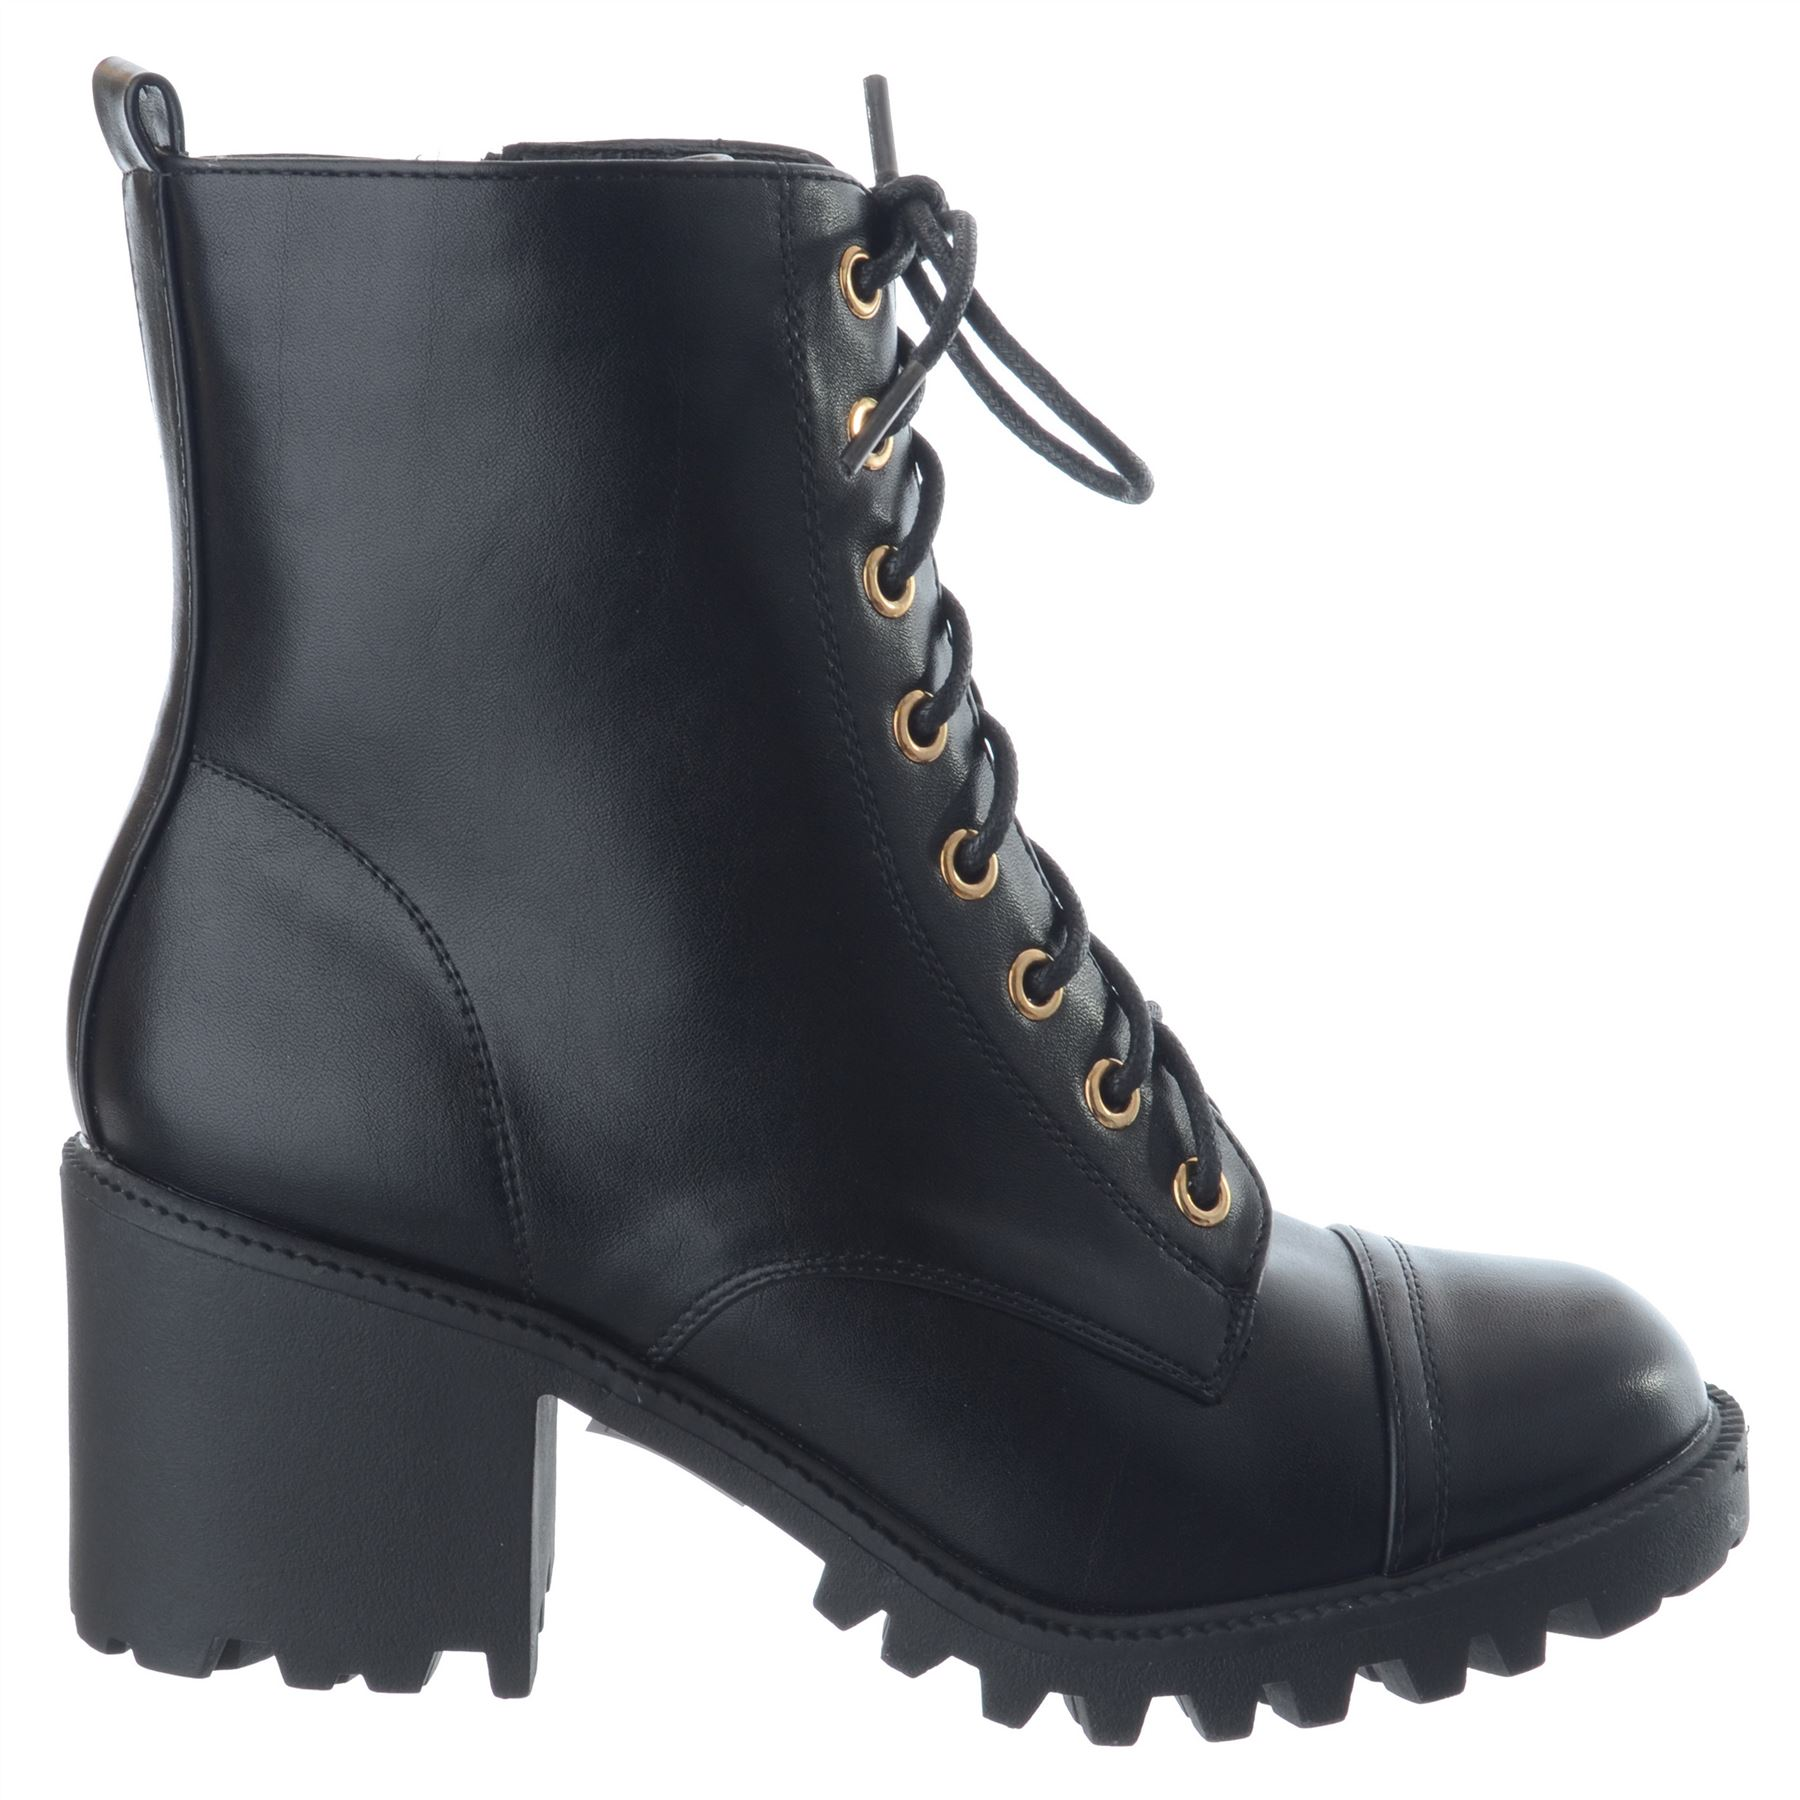 3bb31a1a2b87 Womens Ladies Lace Up Zip Rugged Sole Military Block Heel Ankle ...